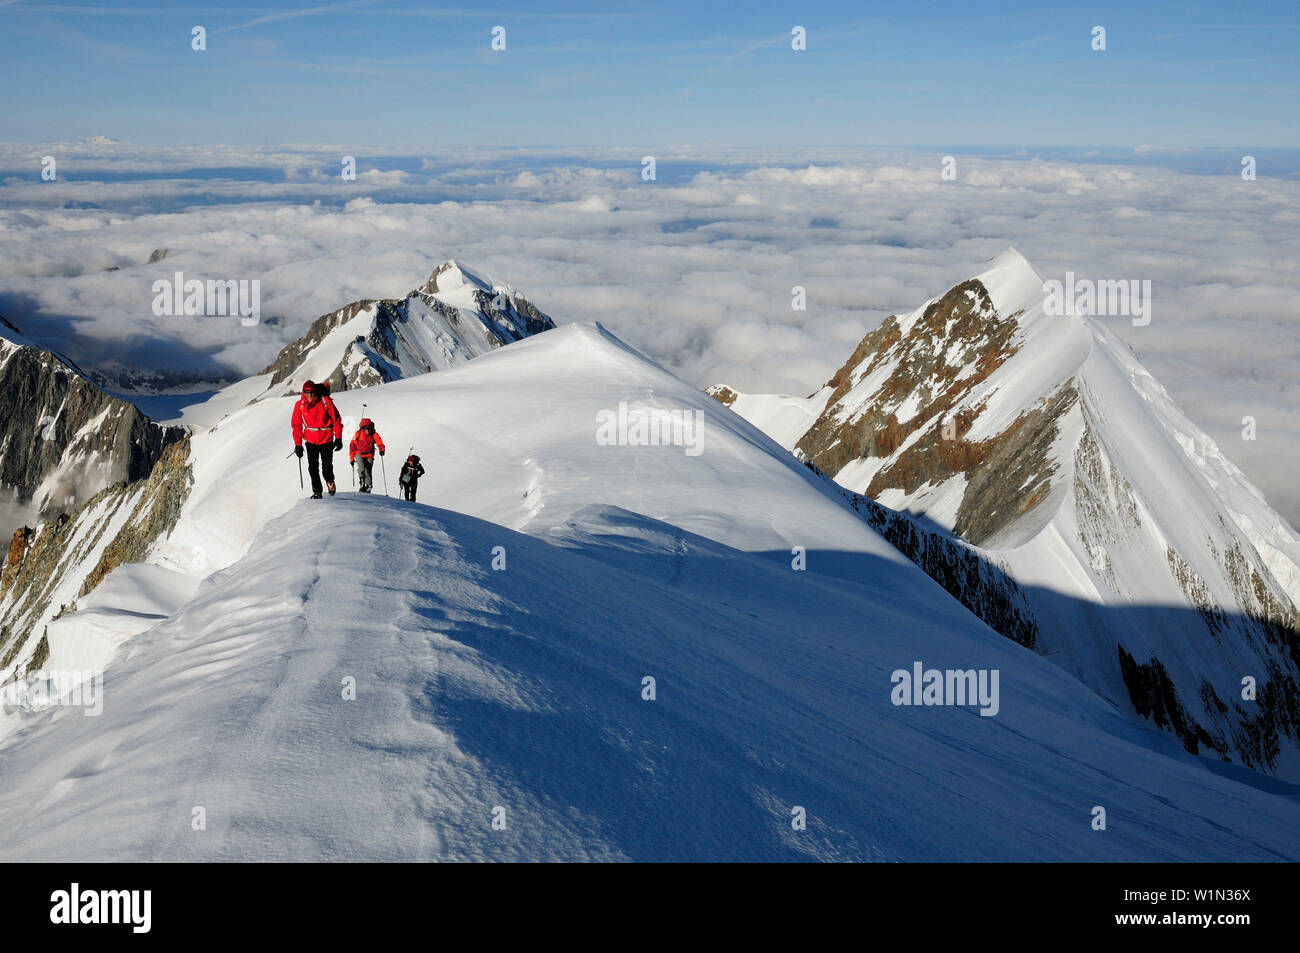 Mountaineers during ascent of Dome de Gouter, Aiguille de Bionnassay in the background, Mont Blanc, France - Stock Image